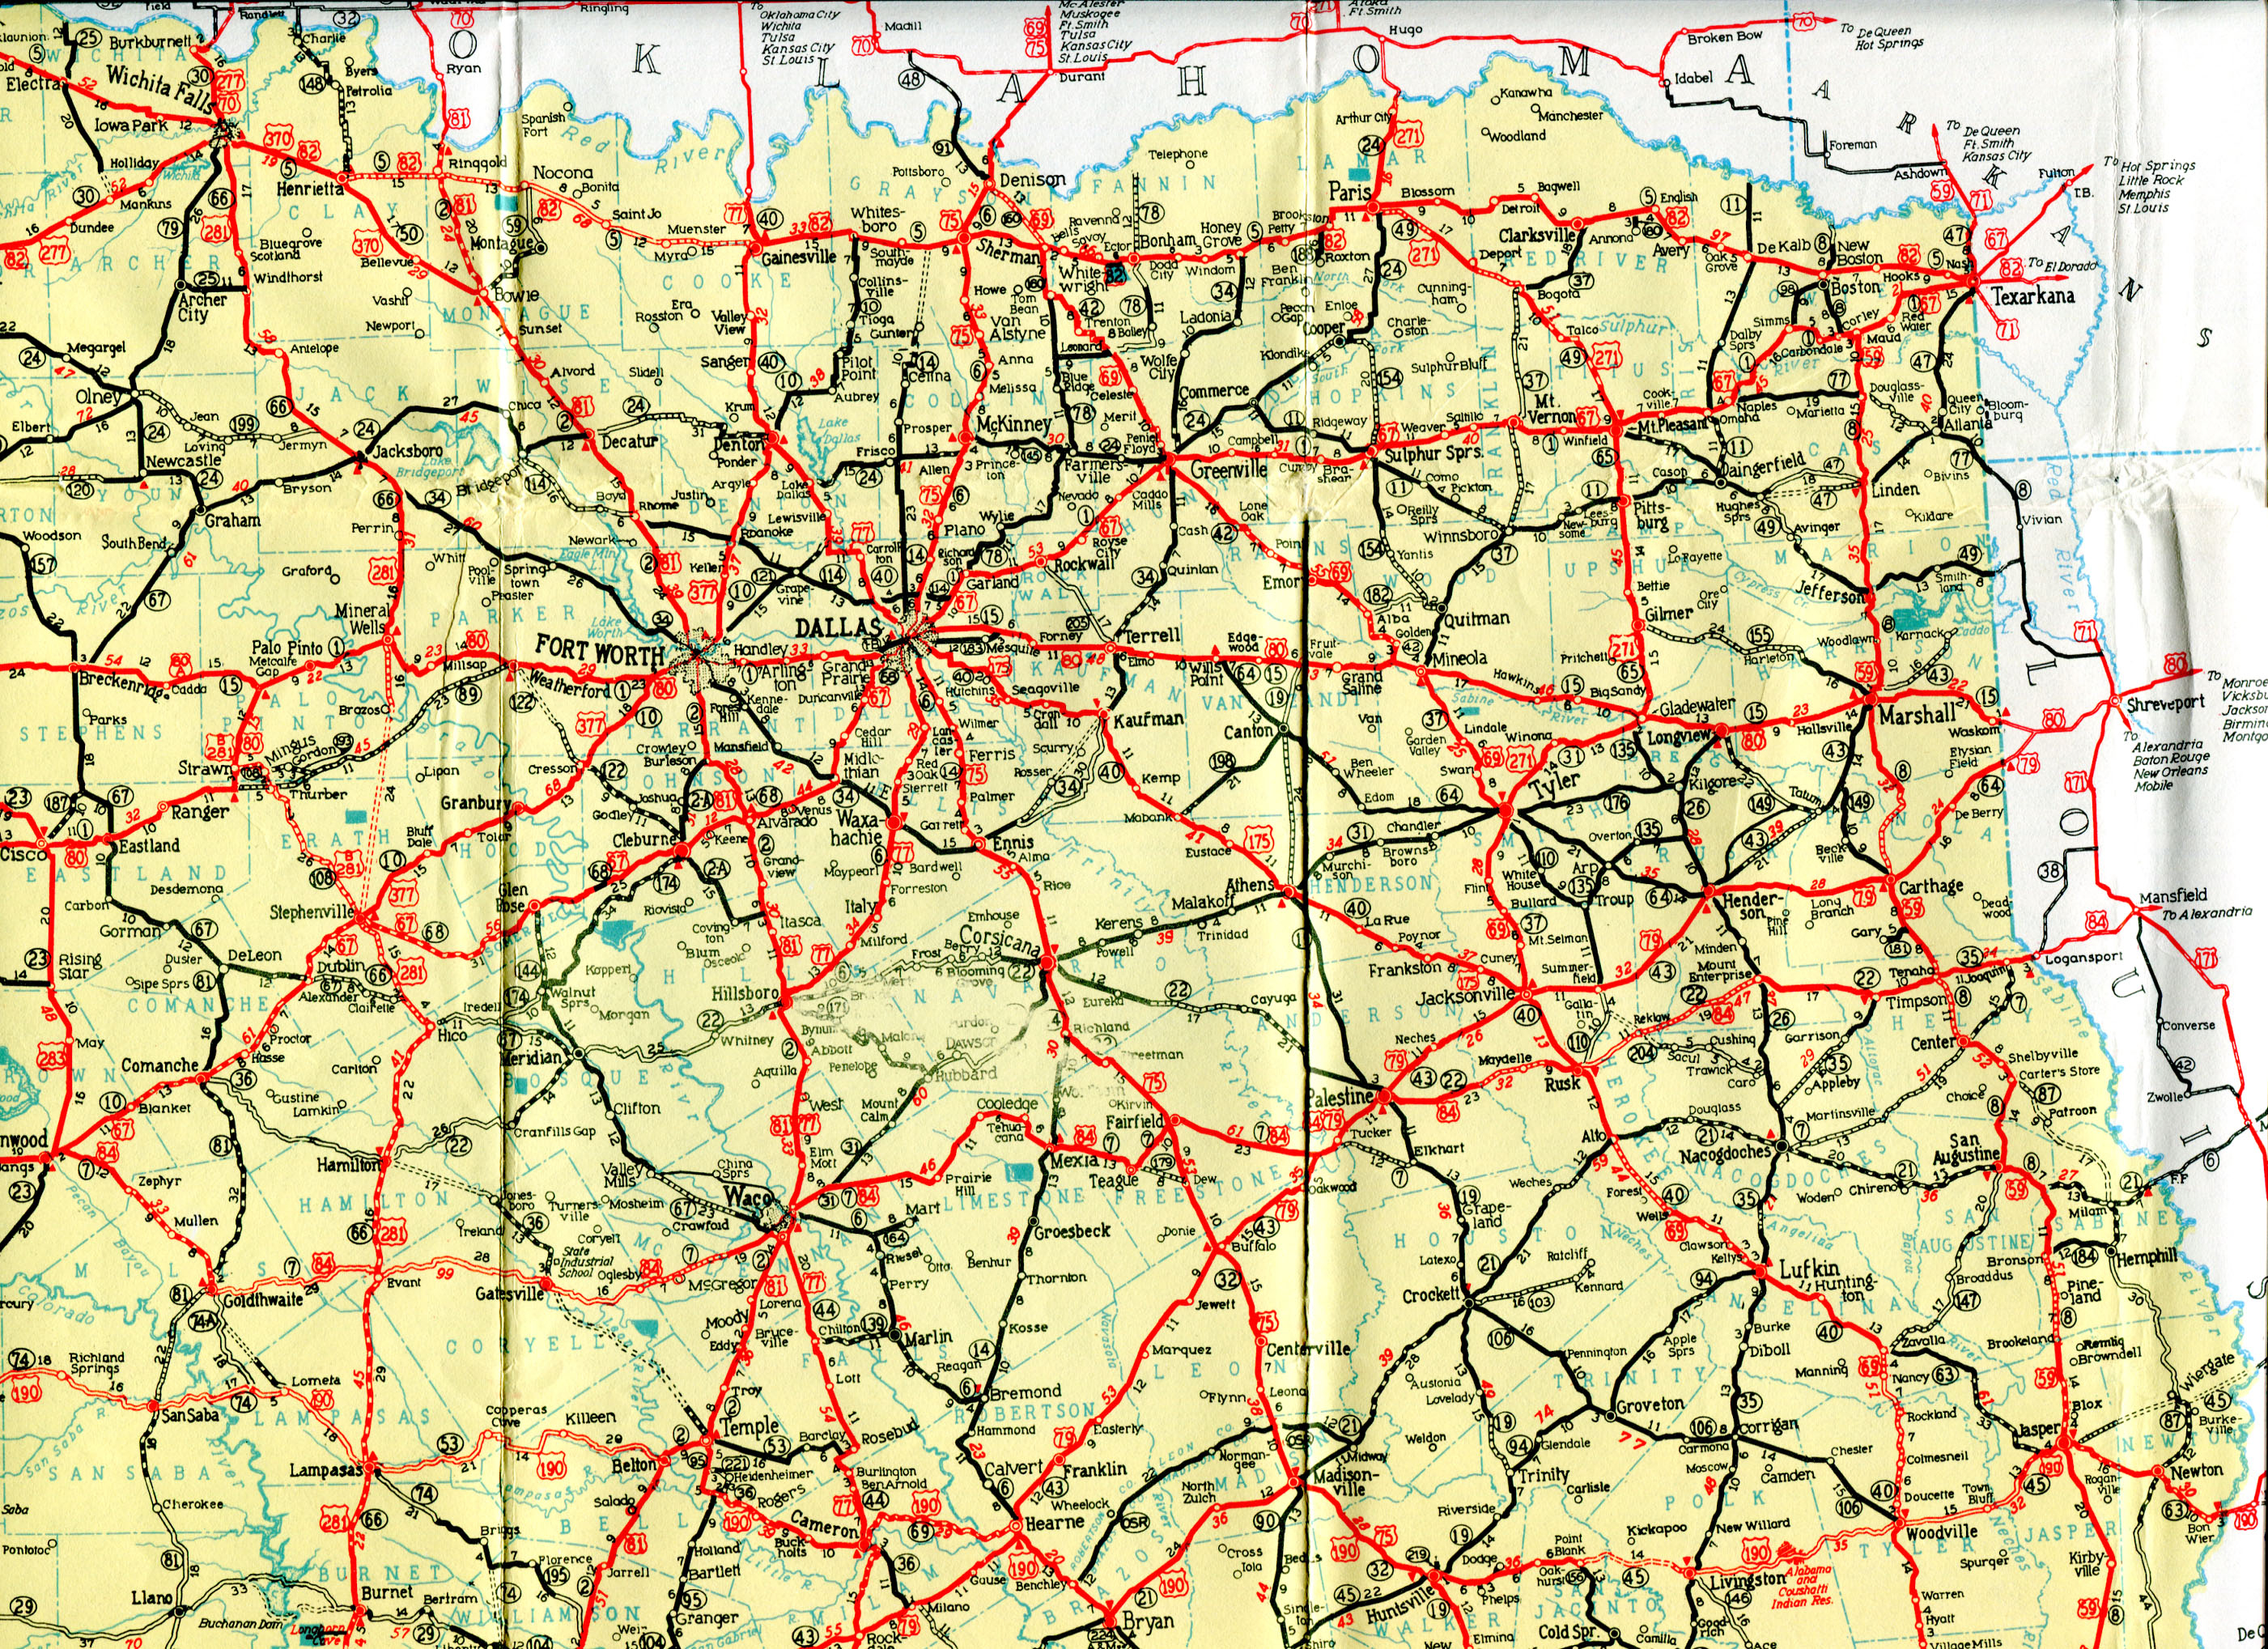 Old Highway Maps Of Texas - Detailed Road Map Of Texas